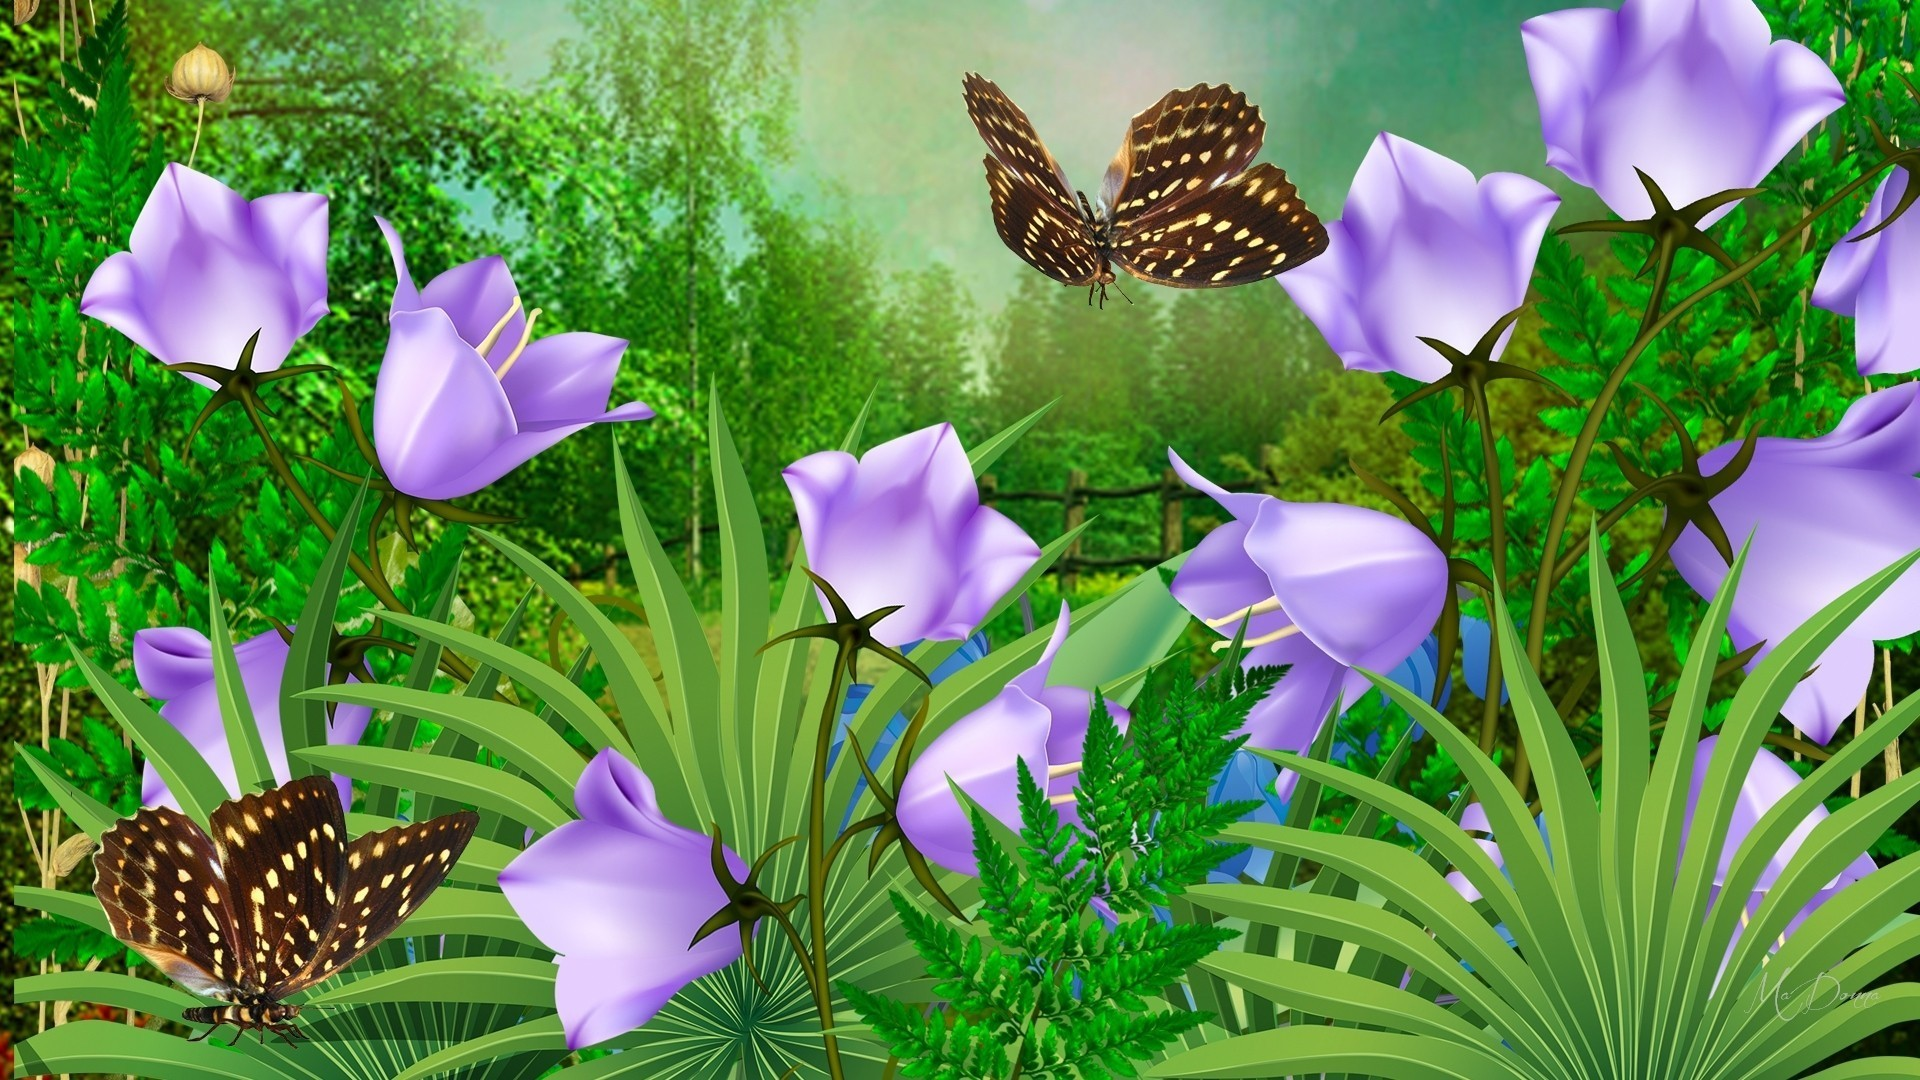 Firefox Wallpaper Themes  - Flower Wallpaper With Butterfly 4k , HD Wallpaper & Backgrounds